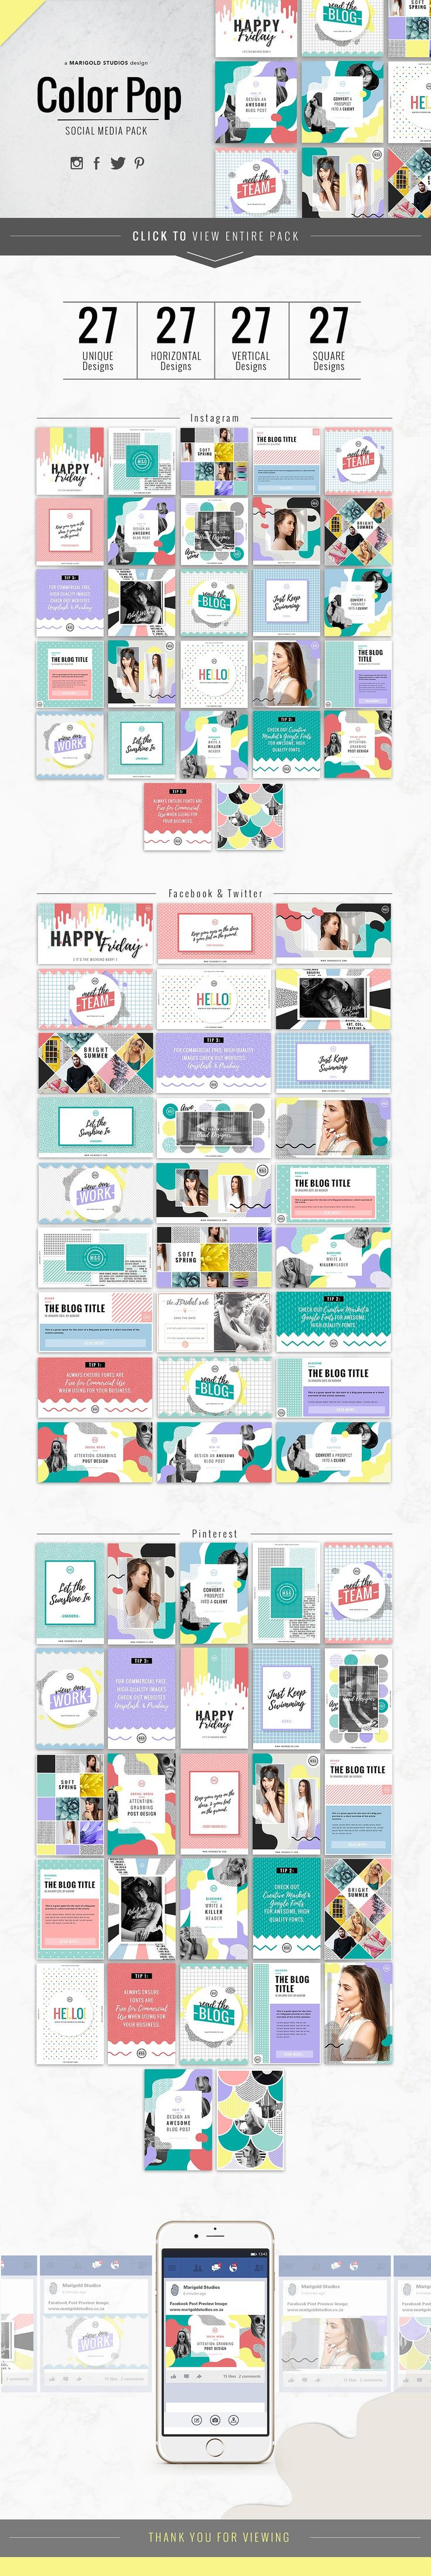 COLOR POP | Social Media Pack by Marigold Studios on @creativemarket Social Media, Design, Memphis, Colourful, Creative, Twitter, Instagram, Pinterest, Facebook